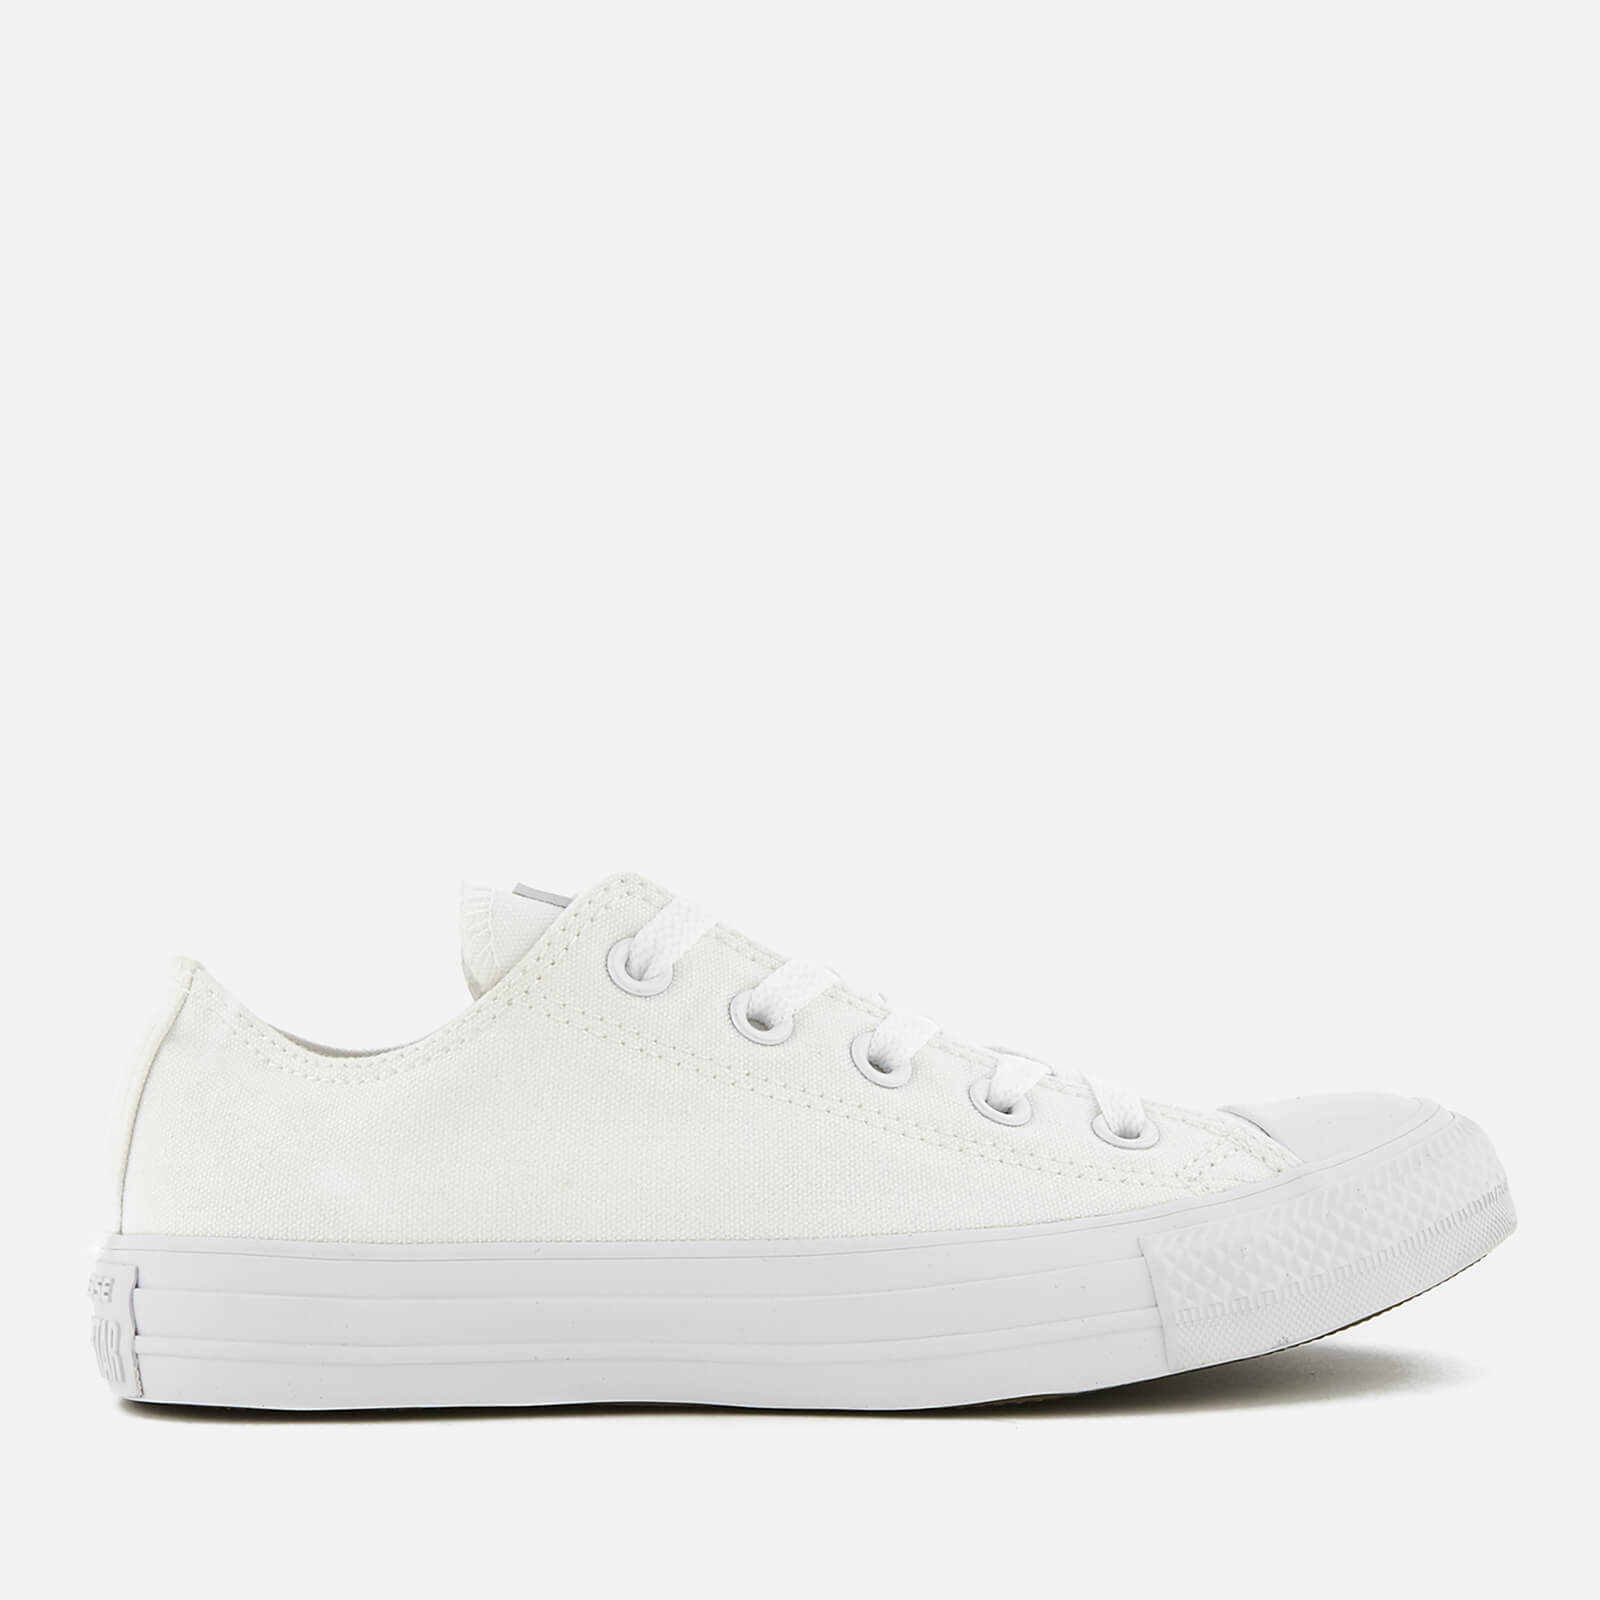 abeaacb86bff Converse Chuck Taylor All Star Ox Canvas Trainers - White Monochrome Mens  Footwear